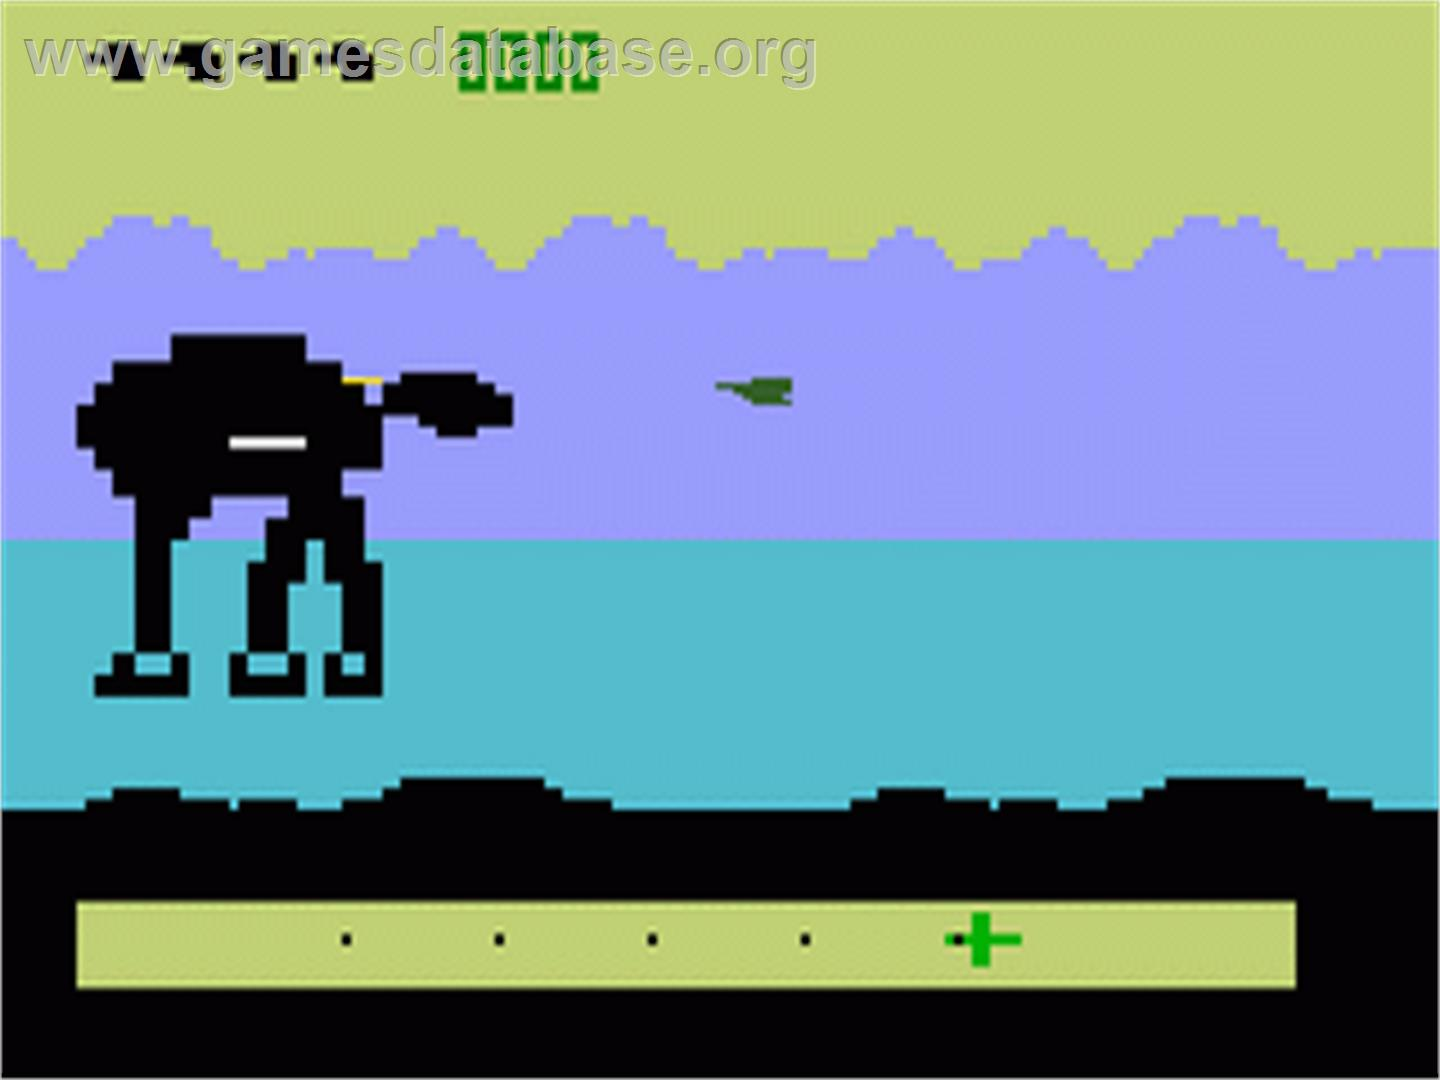 screen shot of Star Wars Empire Strikes Back video game